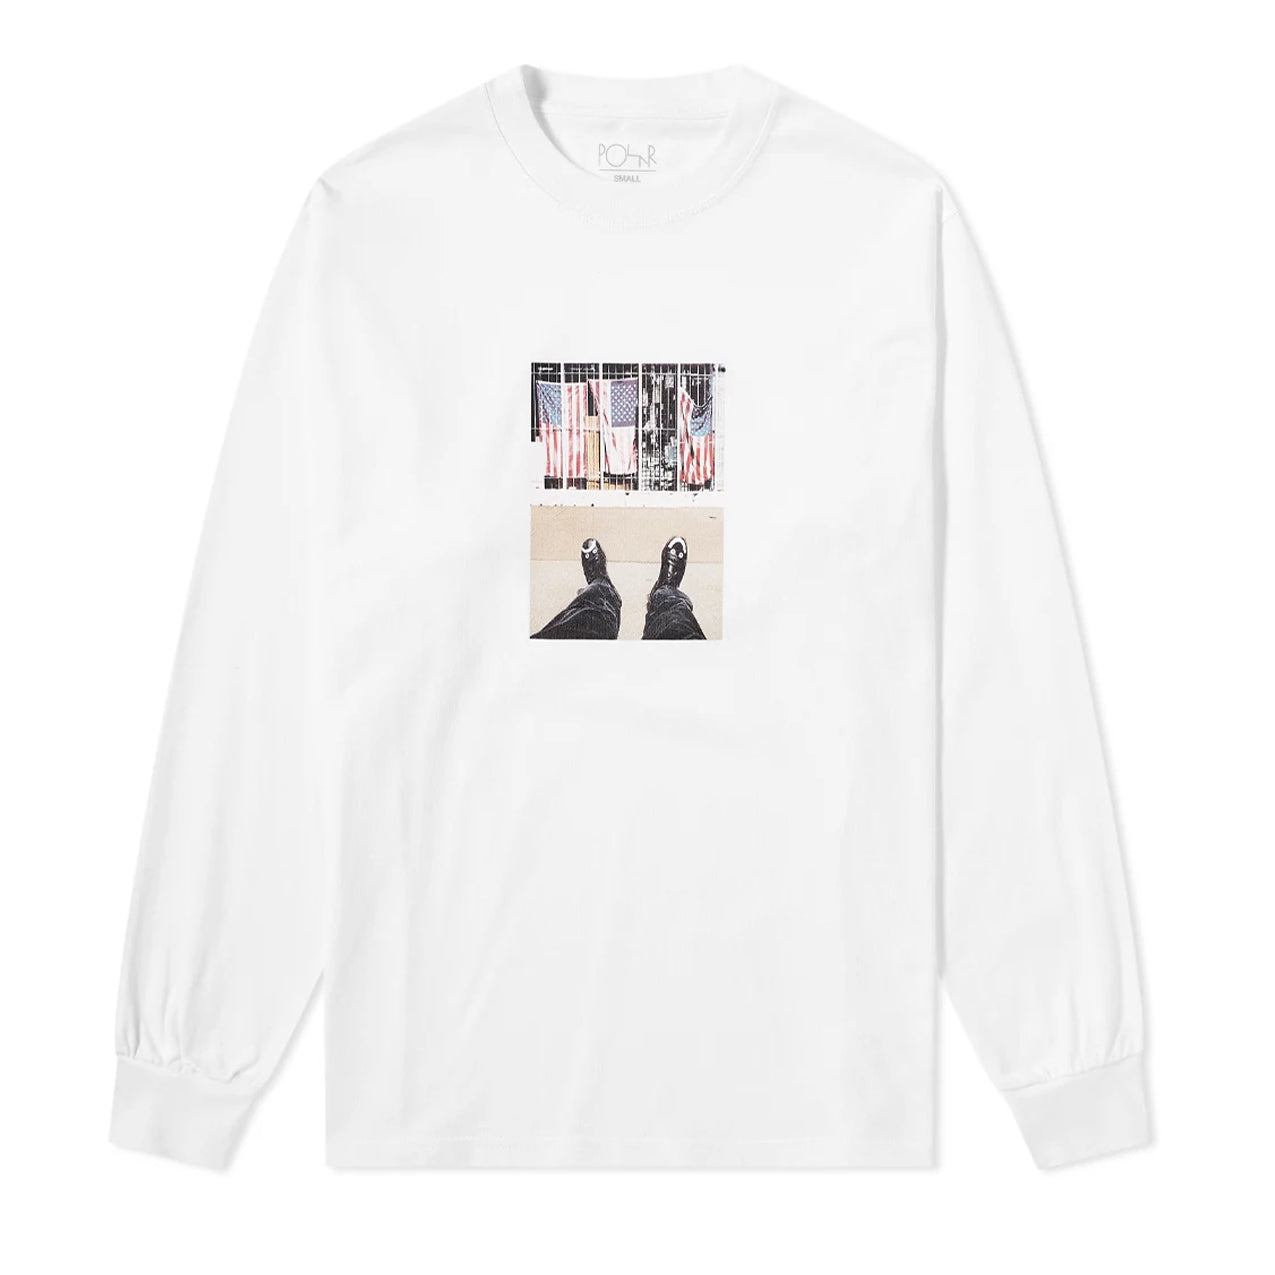 Polar - Happy Sad Around The World L/S - White